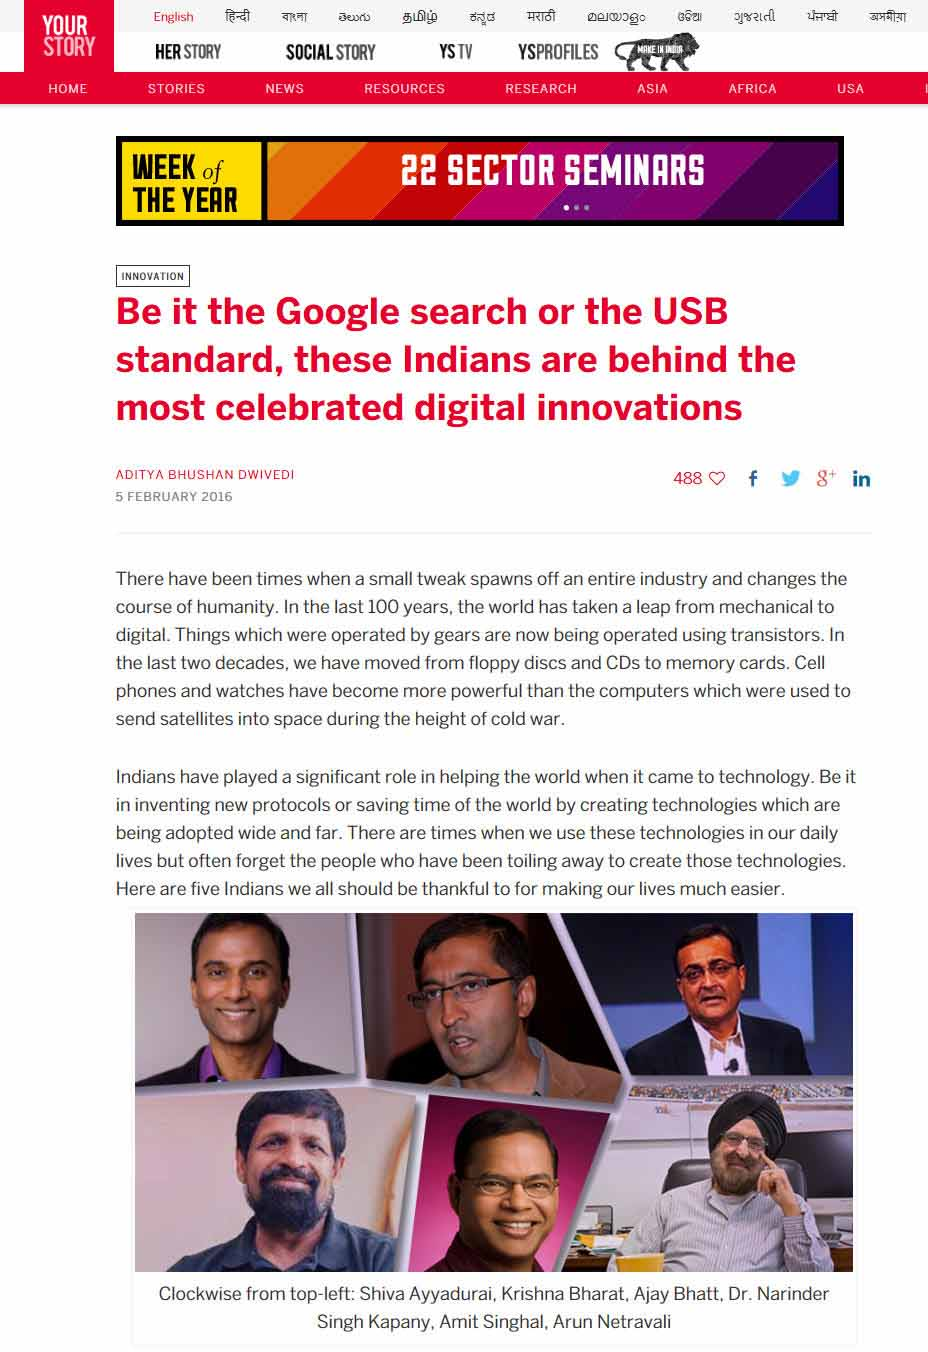 Be It The Google Search Or The USB Standard, These Indians Are Behind The Most Celebrated Digital Innovations